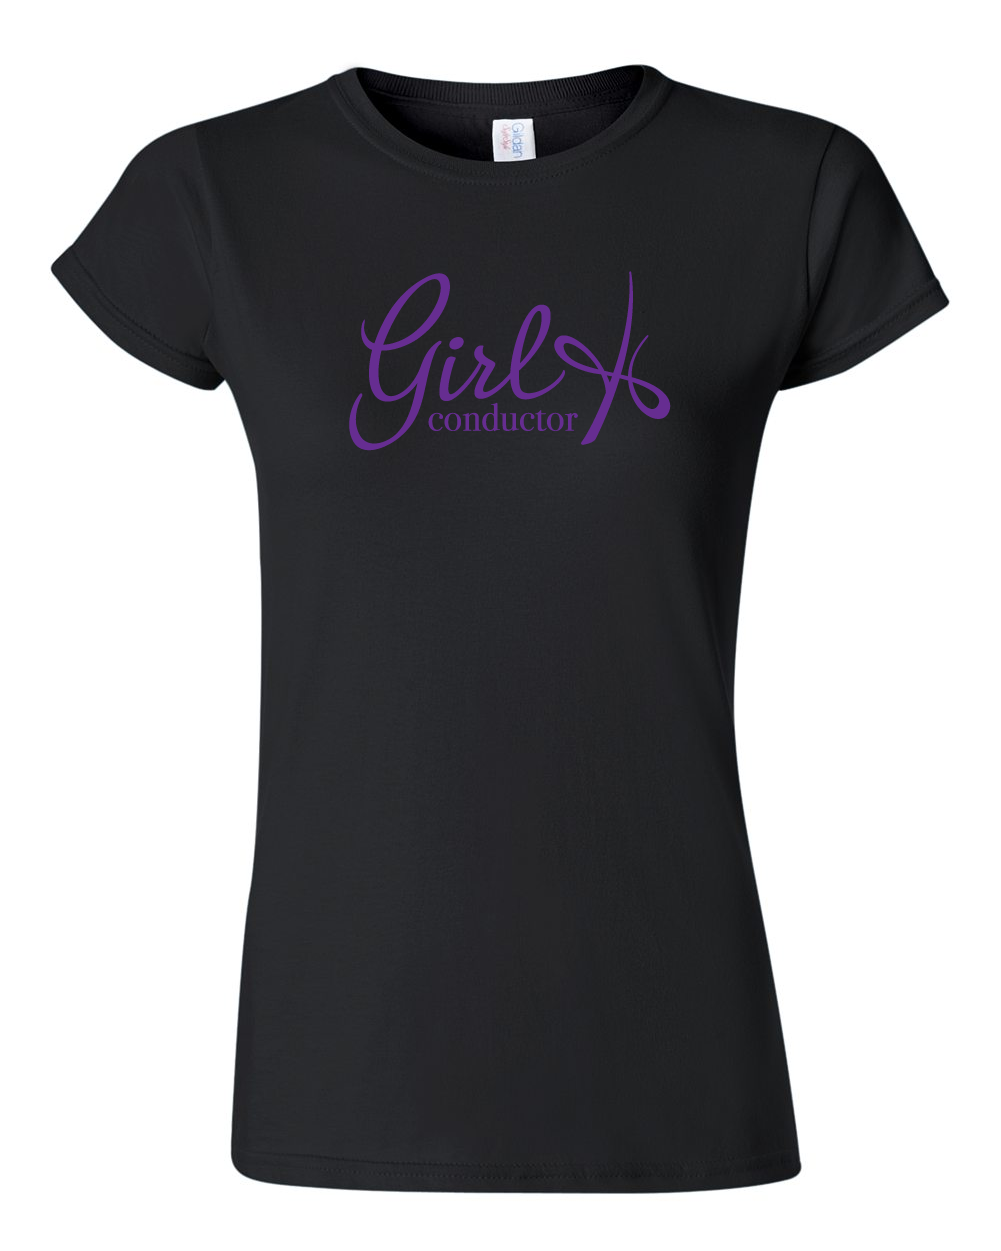 Girl Conductor Ladies Tee - Black